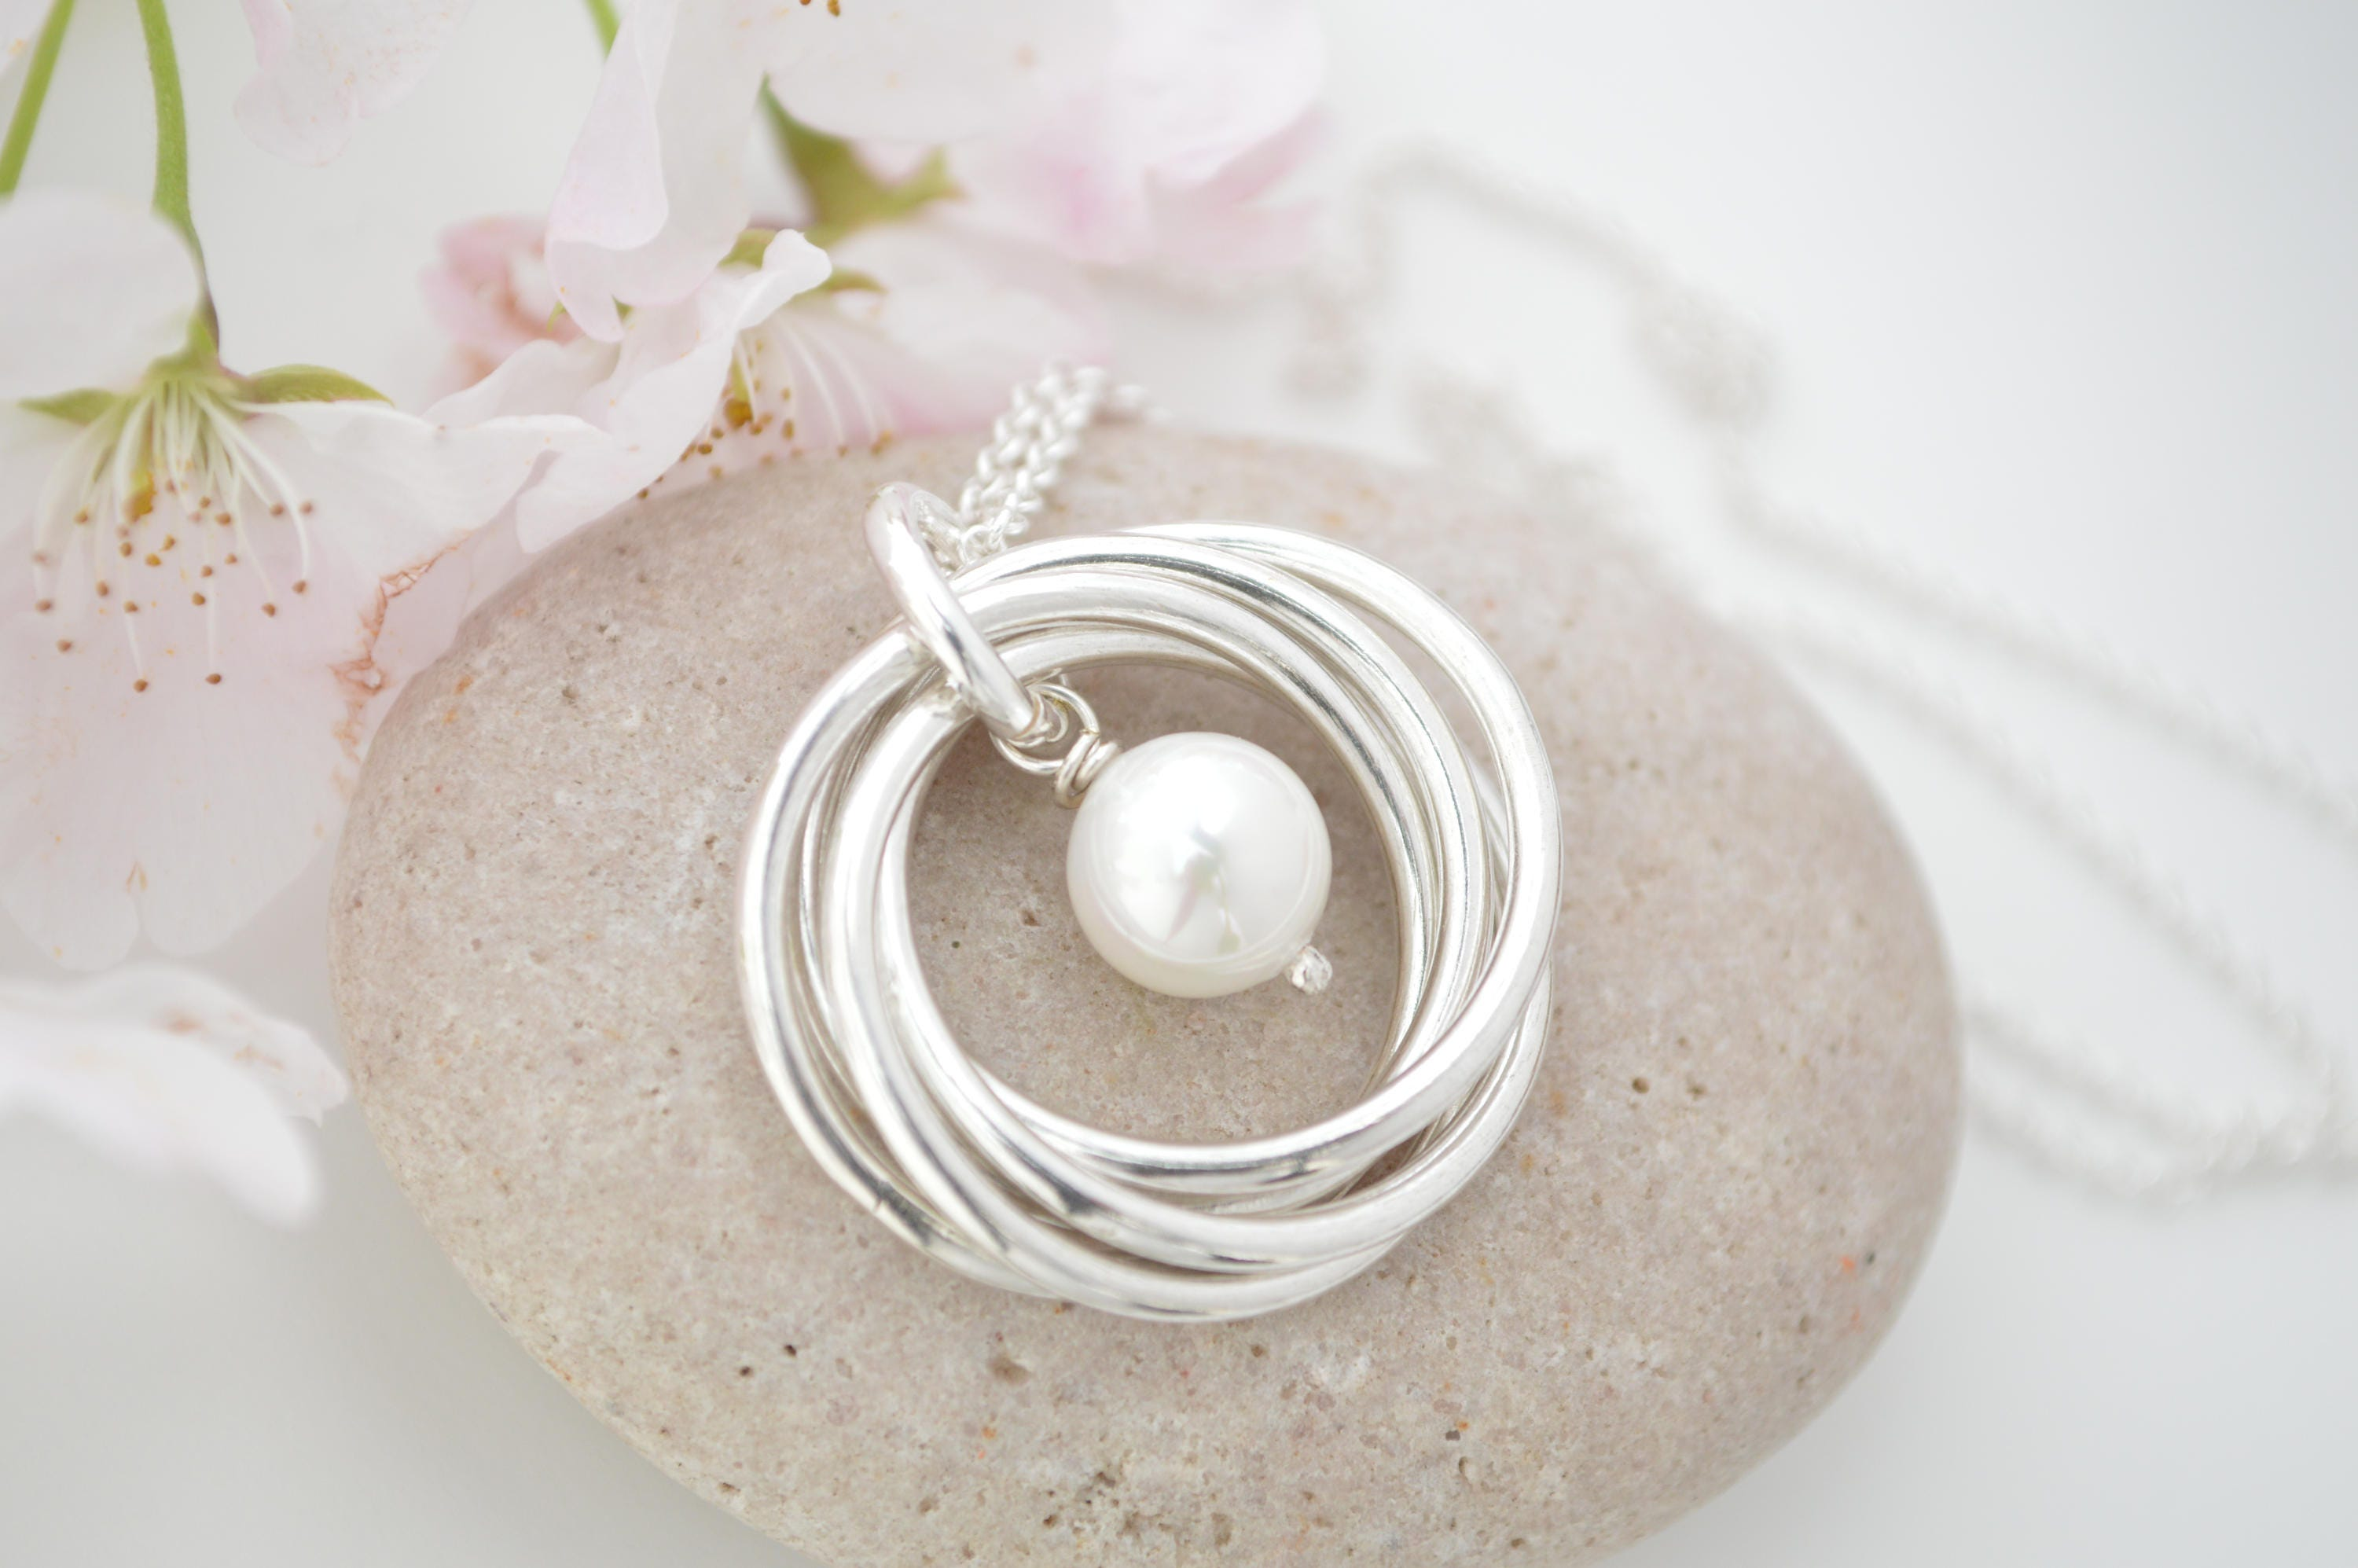 60th Birthday Gift For Mom And Aunt Necklace 6th Anniversary Her June Birthstone Pearl Jewelry 50th Women